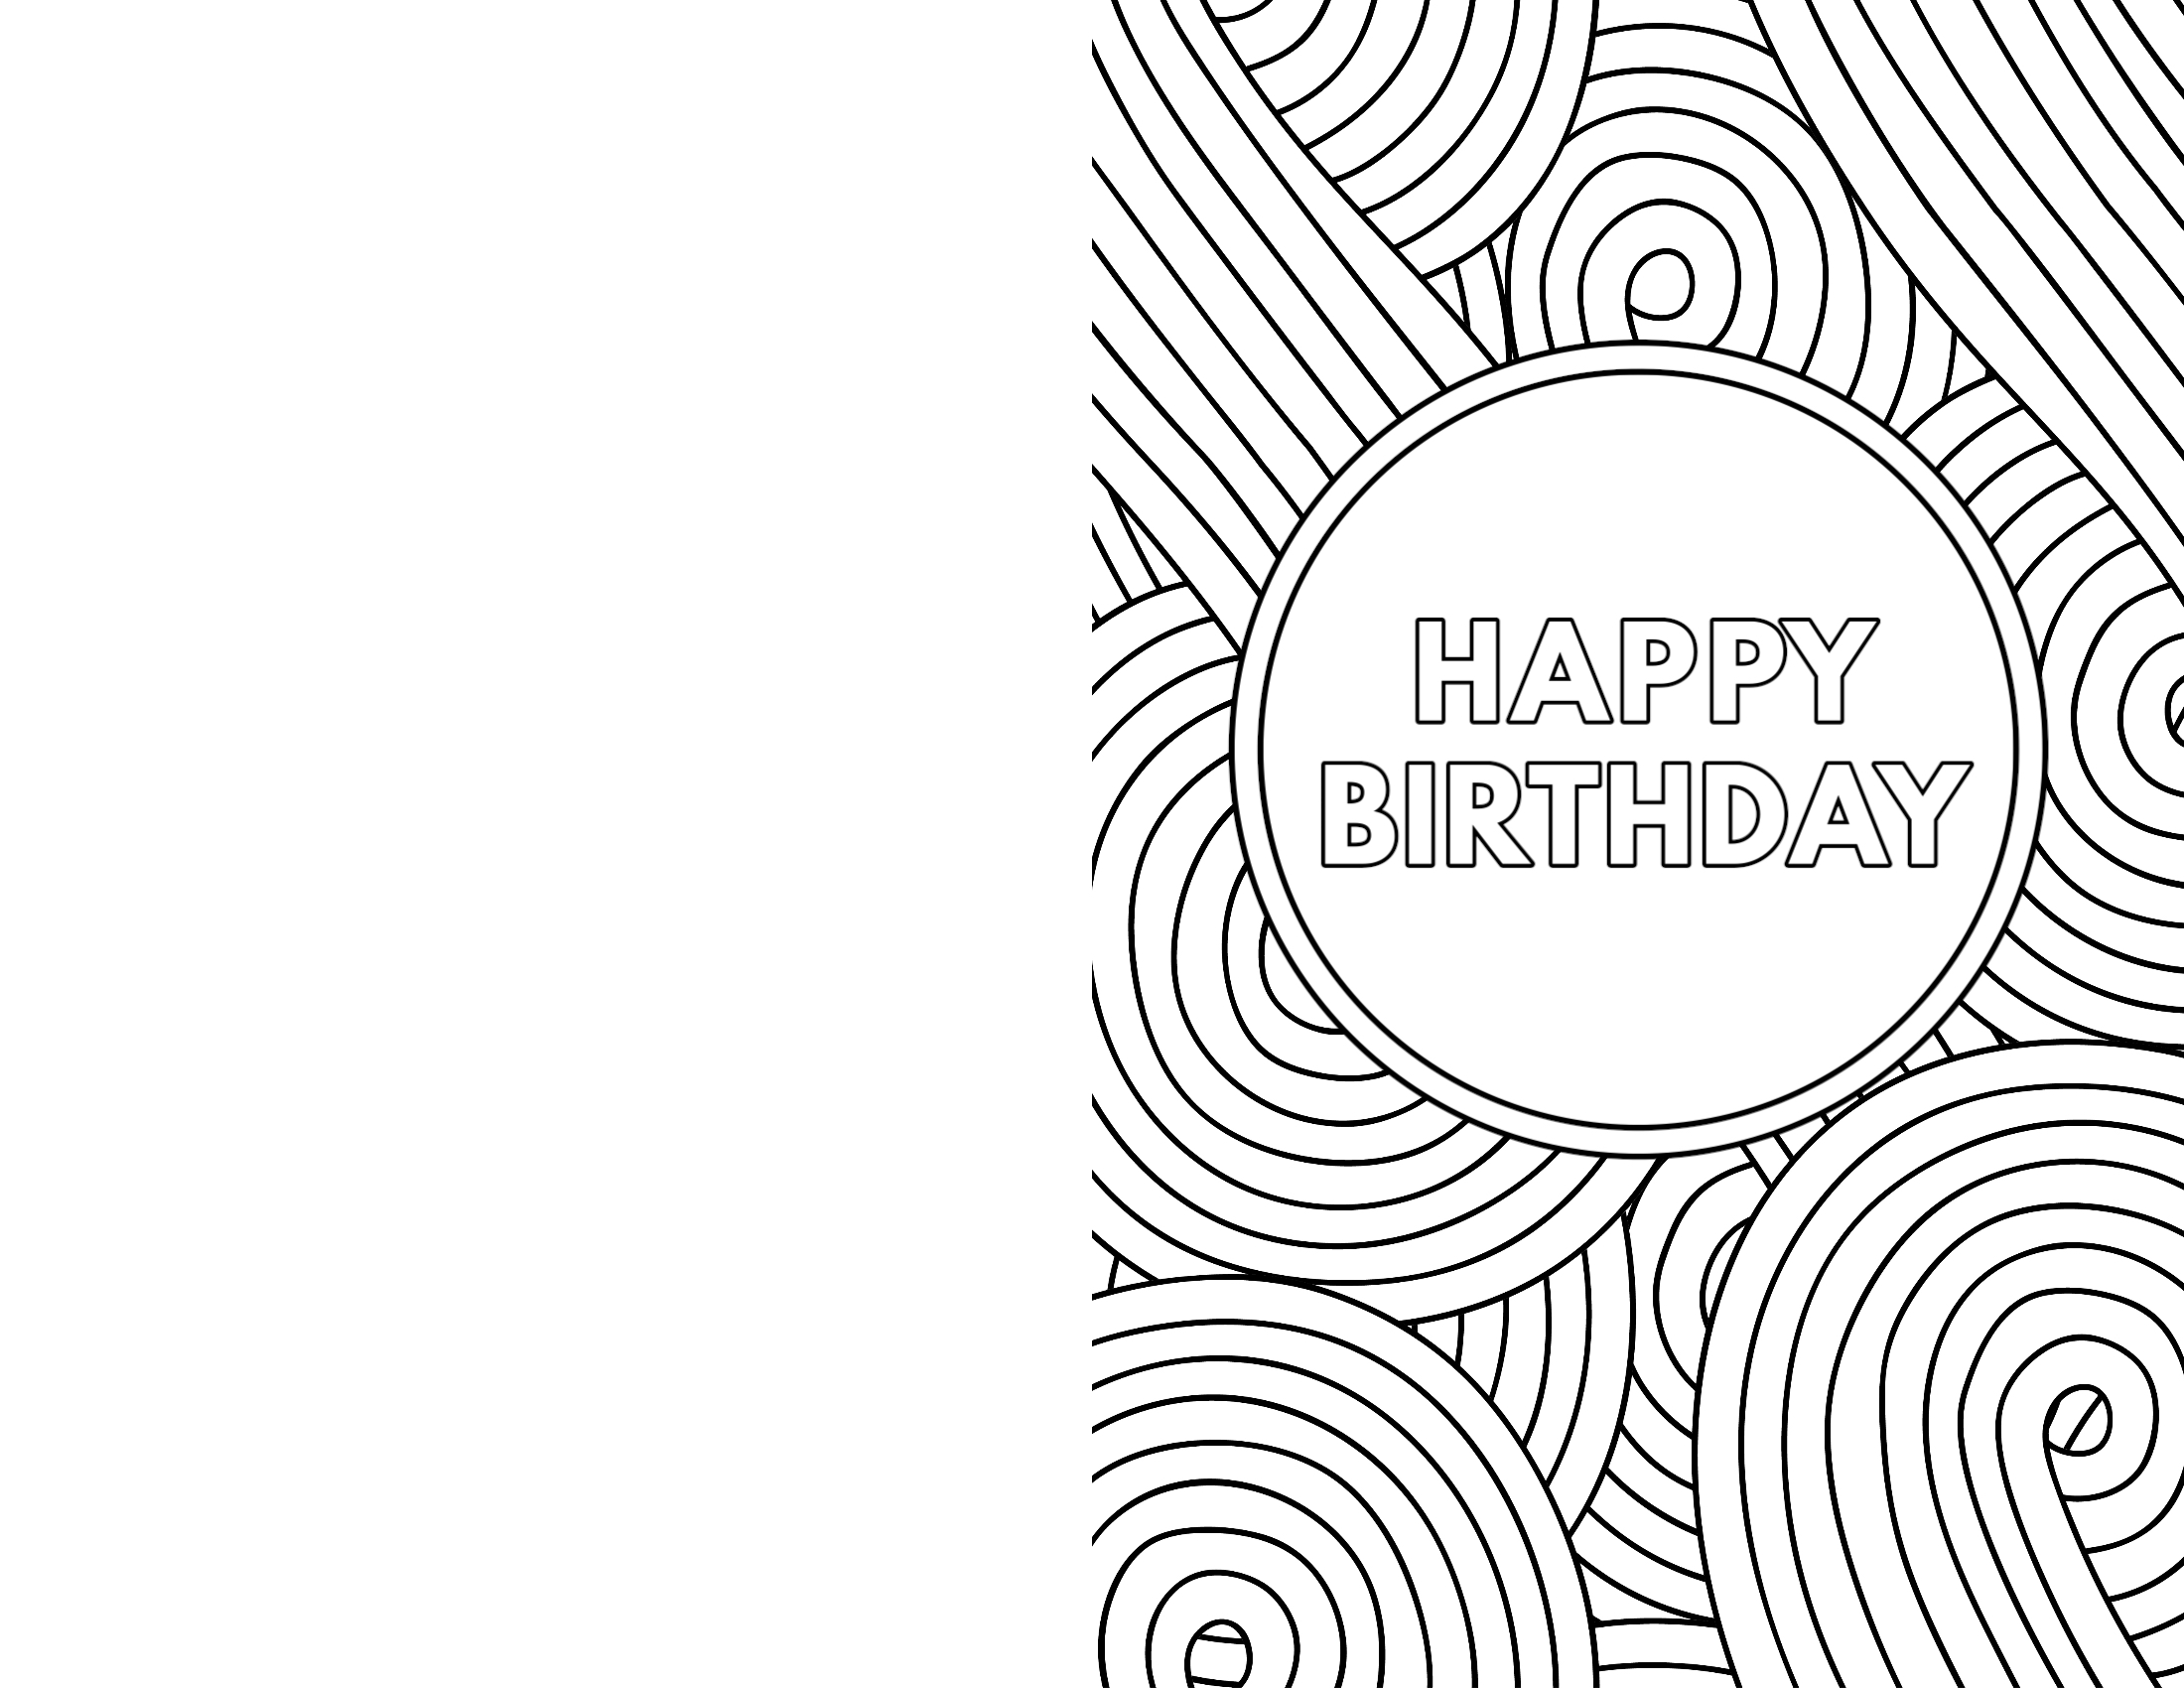 birthday cards for coloring free coloring pages happy birthday cards to print and birthday cards for coloring